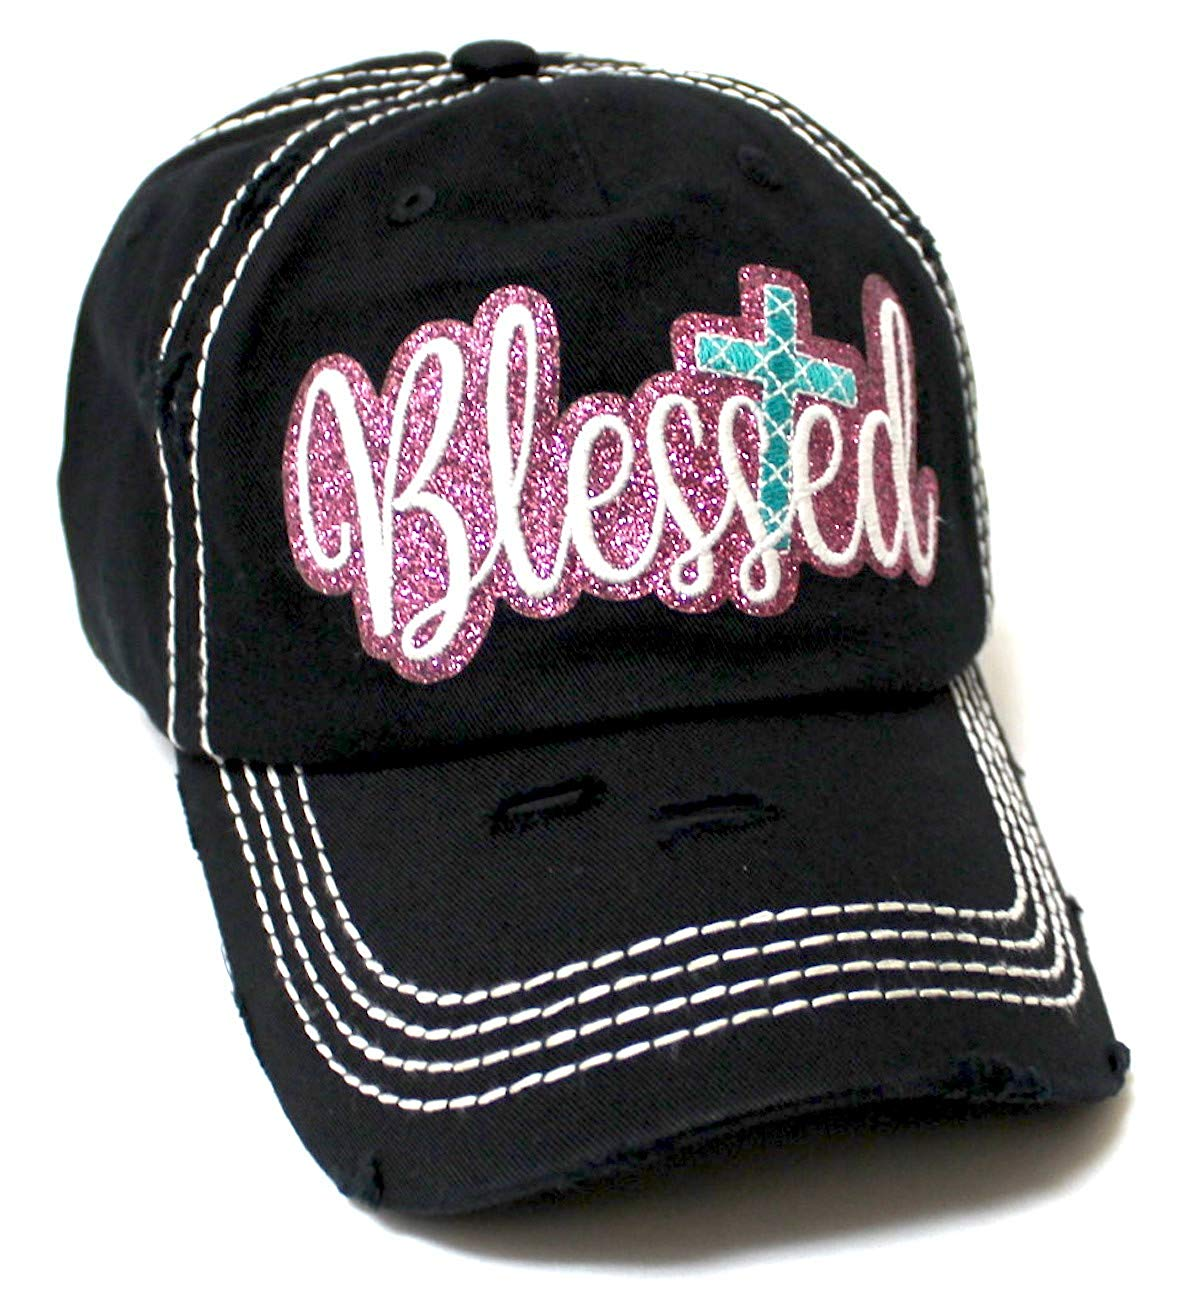 Women's Sparkle Blessed Glitter Ballcap Embellished Cross Monogram Embroidery, Black - Caps 'N Vintage